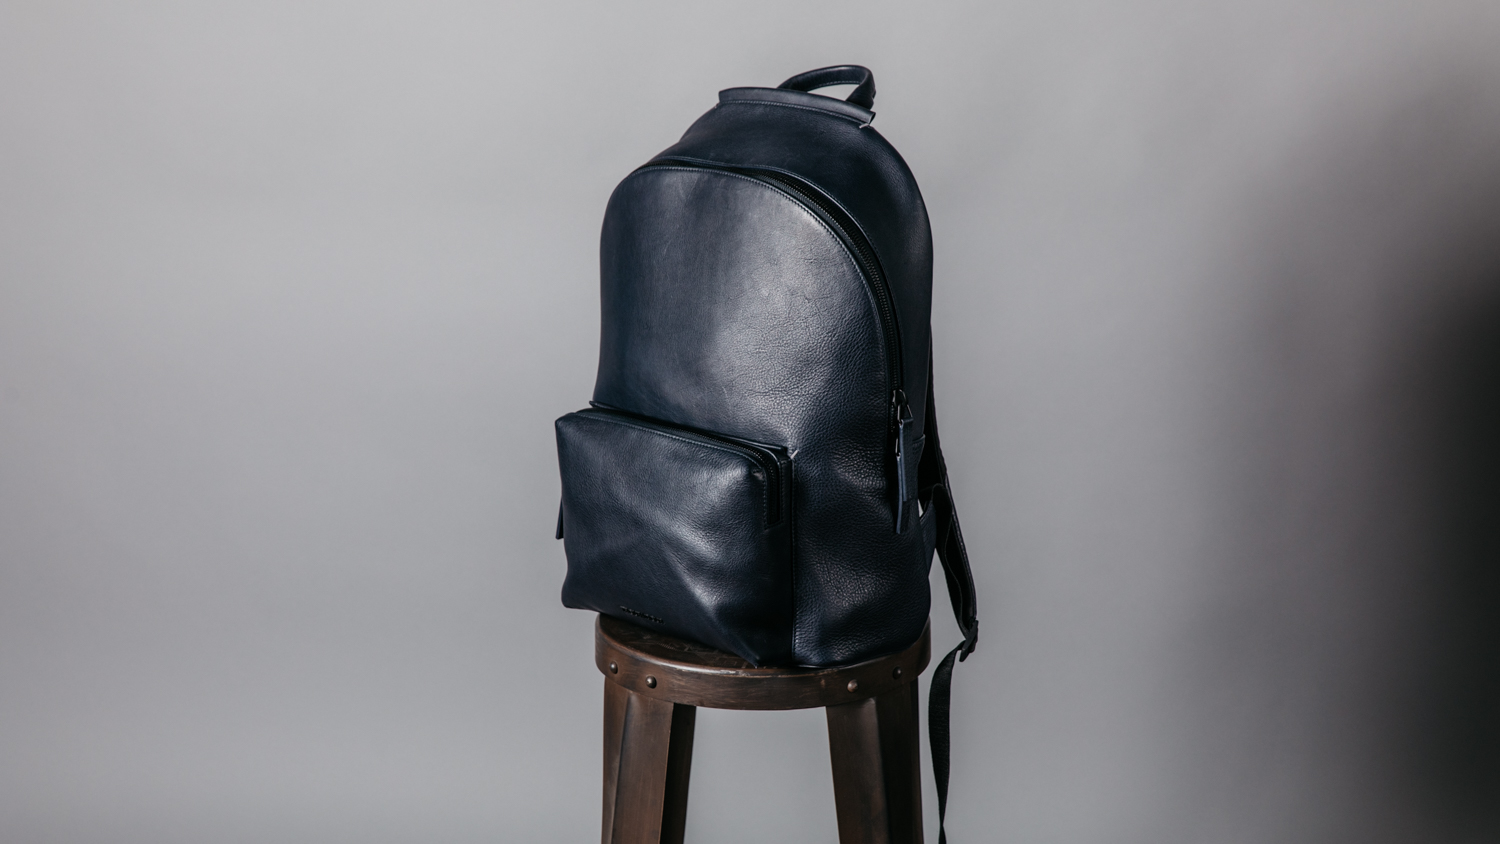 b09740d96 Troubadour Goods: Are You Looking For The Perfect Backpack?